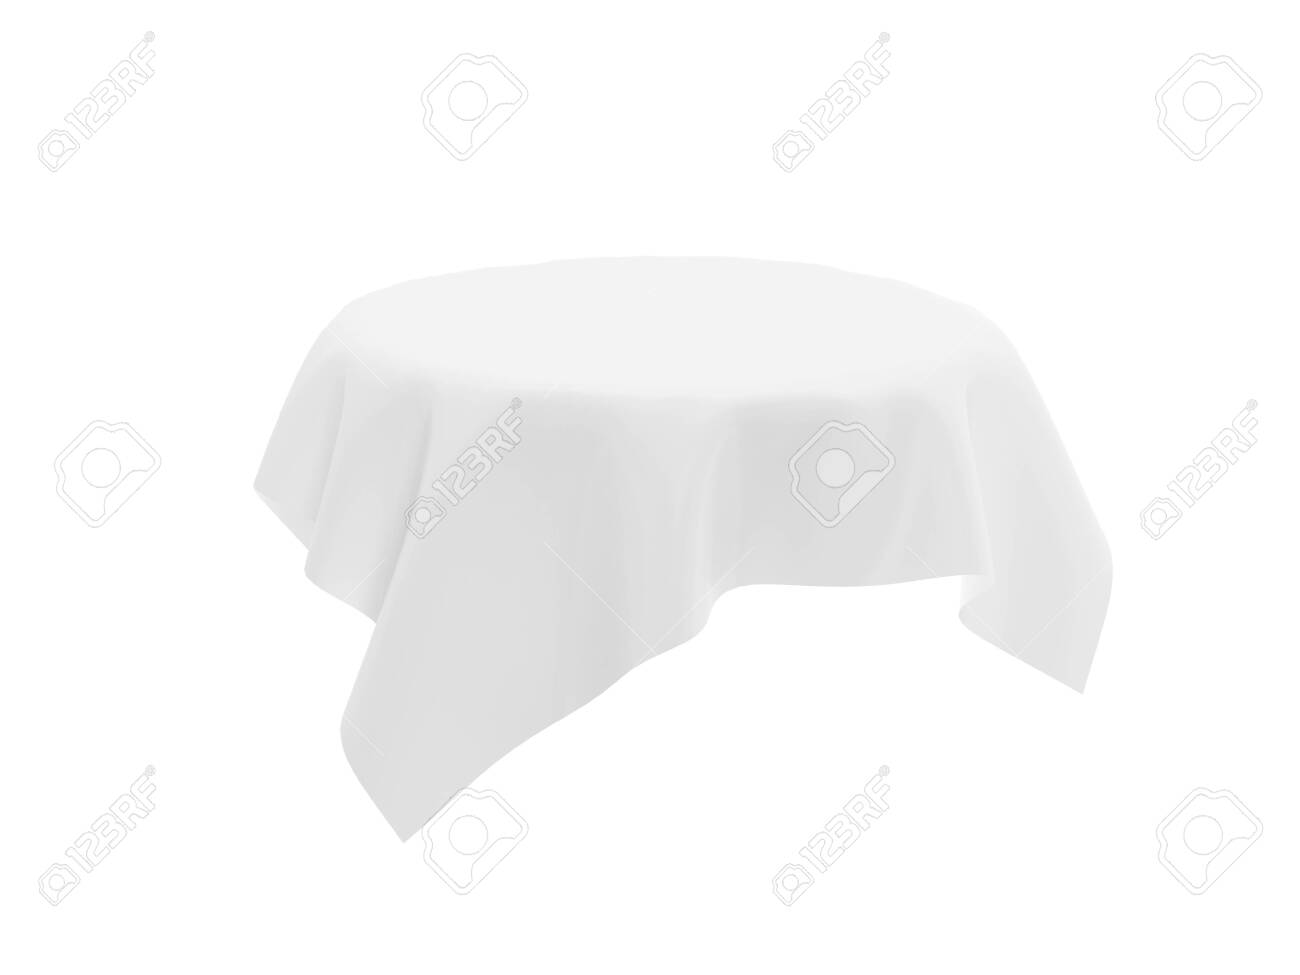 White tablecloth on invisible round table. 3d rendering illustration isolated on white background - 150186338